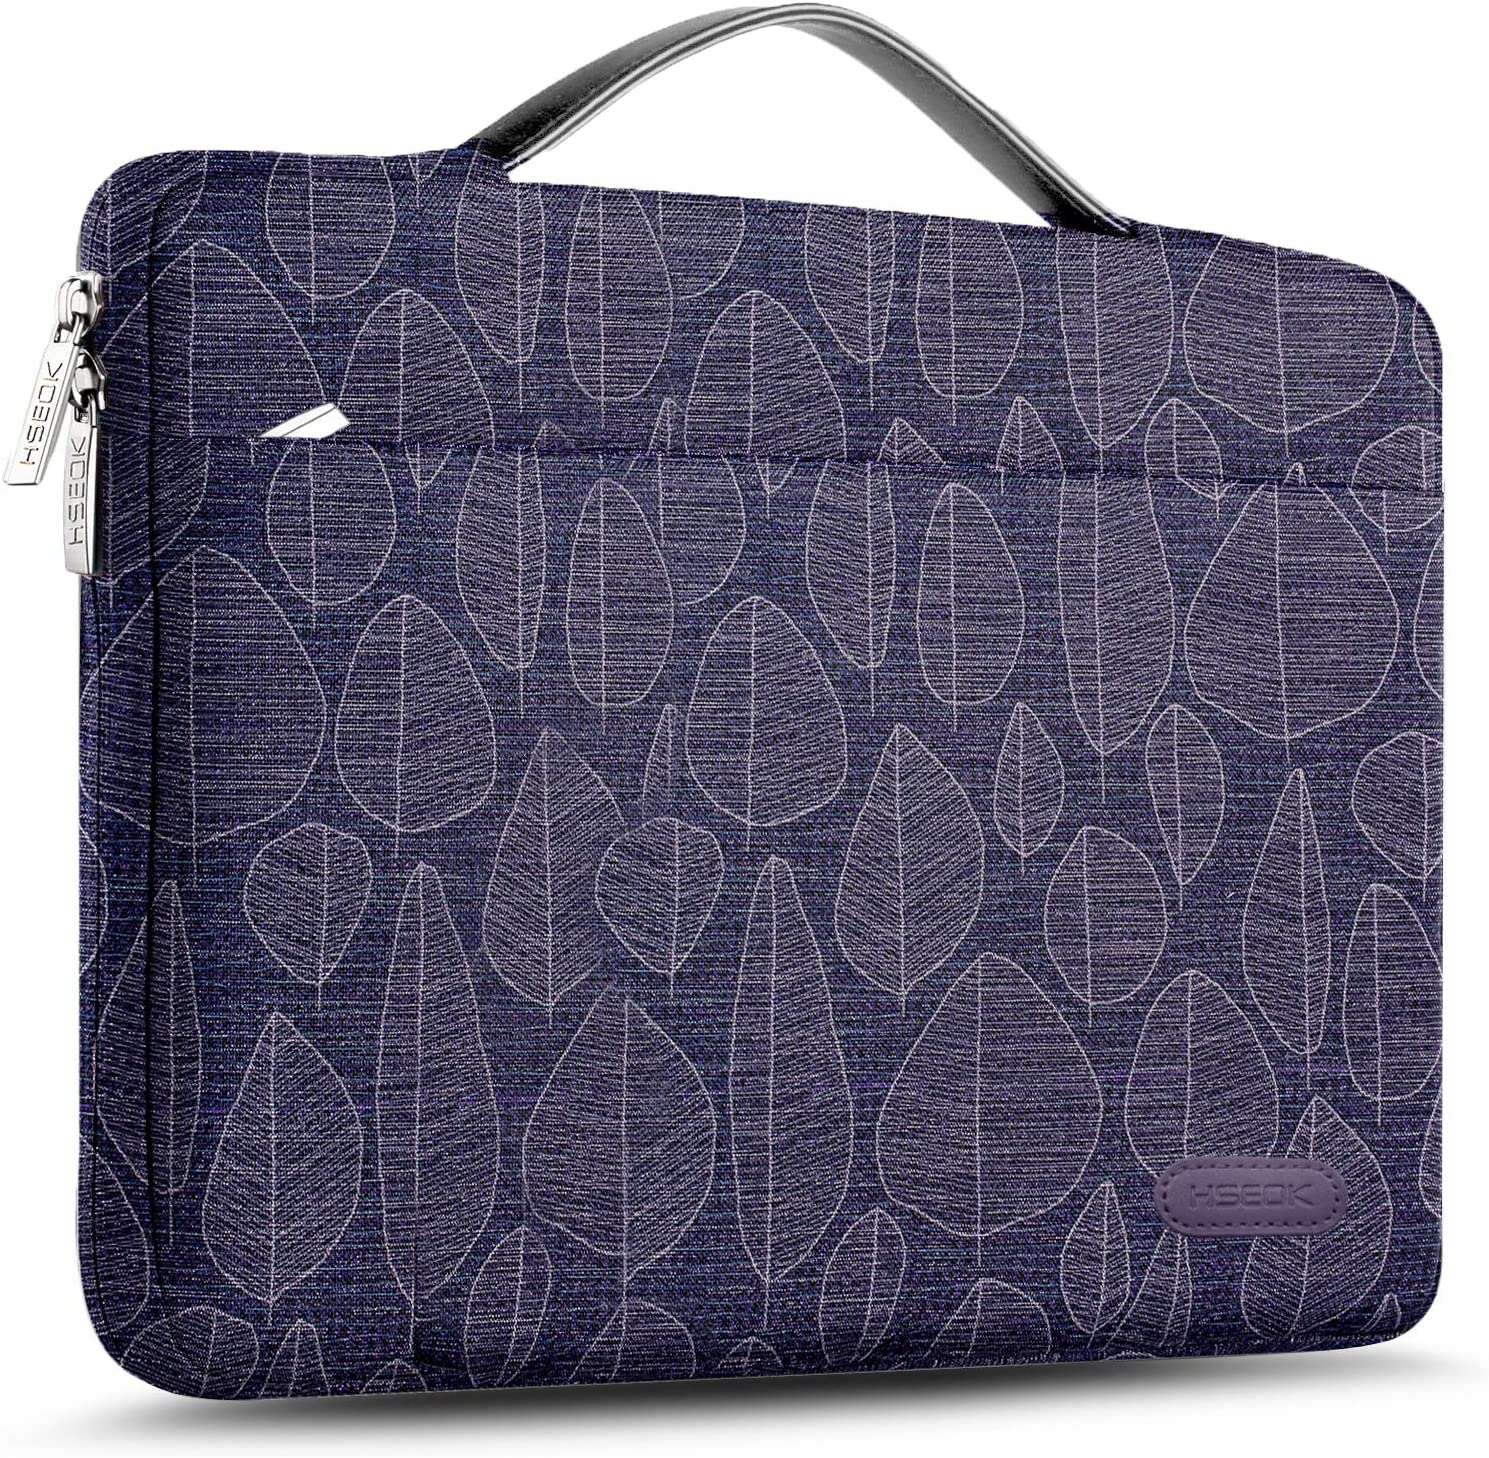 Hseok Laptop Sleeve 15 15.6 16 Inch Case Briefcase, Compatible MacBook Pro 16 15.4 inch, Surface Book 2/1 15 inch Spill-Resistant Handbag for Most Popular 15-16 inch Notebooks, Golden Leafs